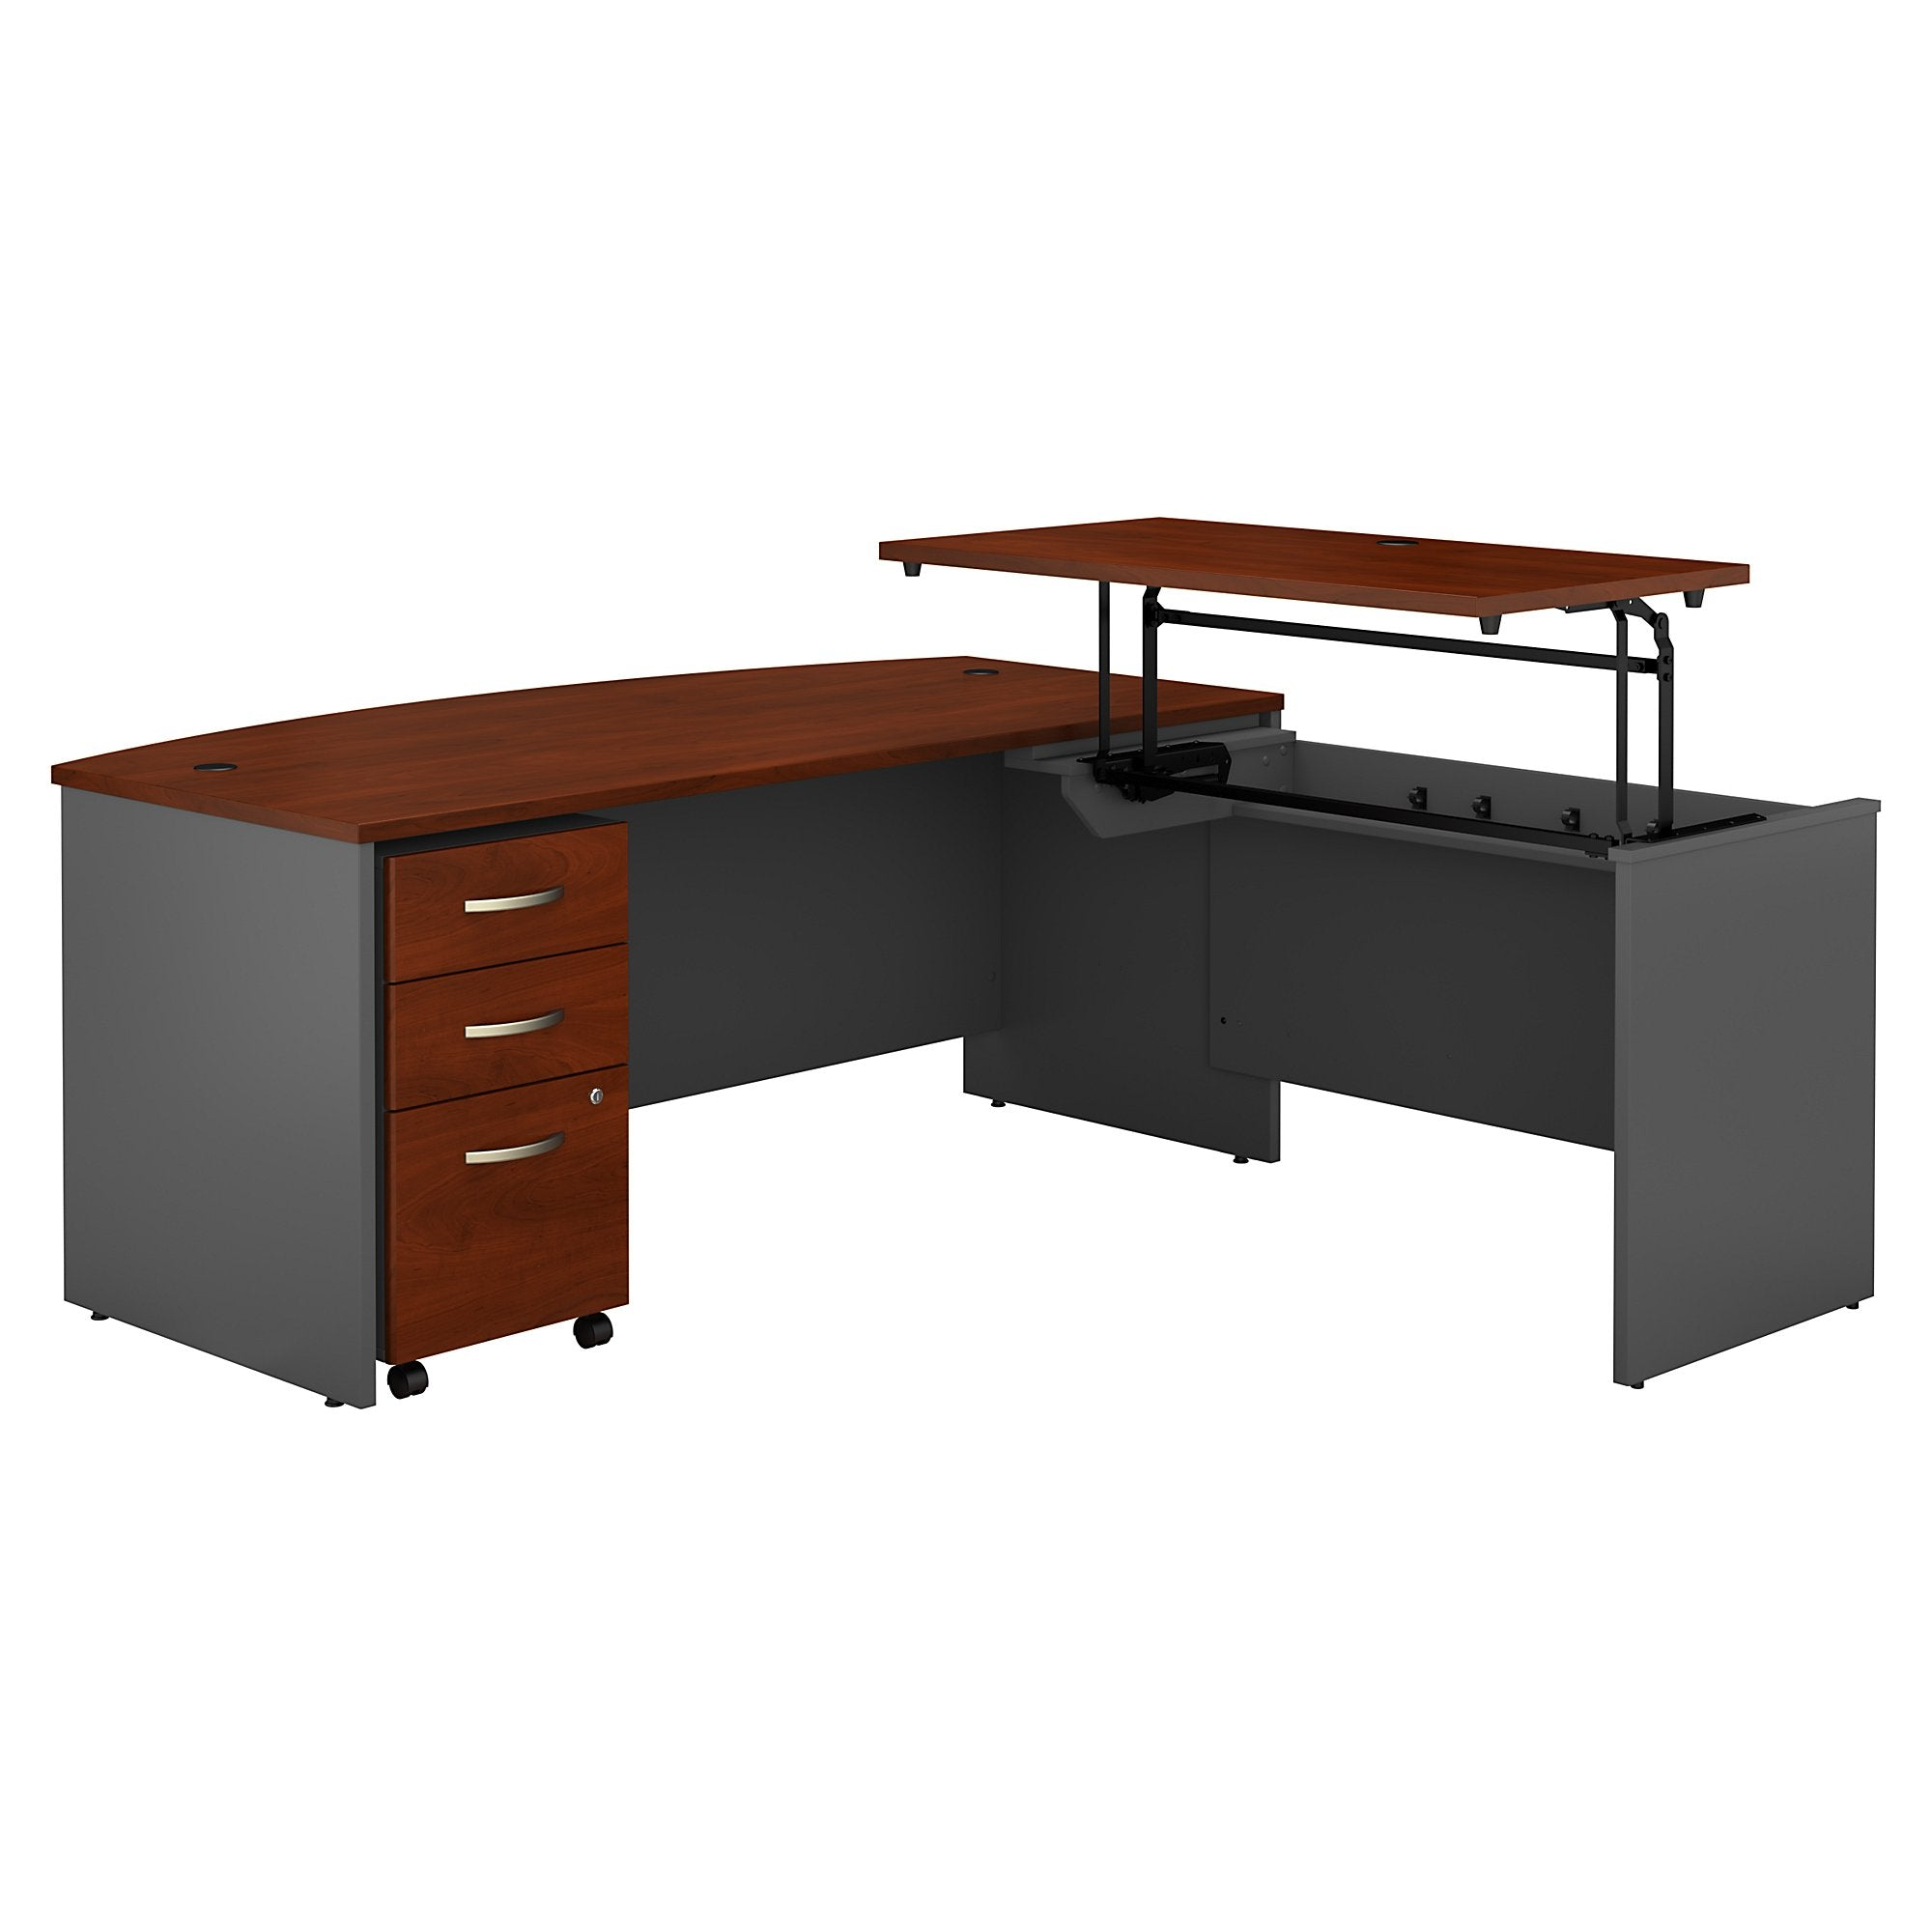 Bush Business Furniture Series C 72W x 36D 3 Position Bow Front Sit to Stand L Shaped Desk with Mobile File Cabinet | Hansen Cherry/Graphite Gray